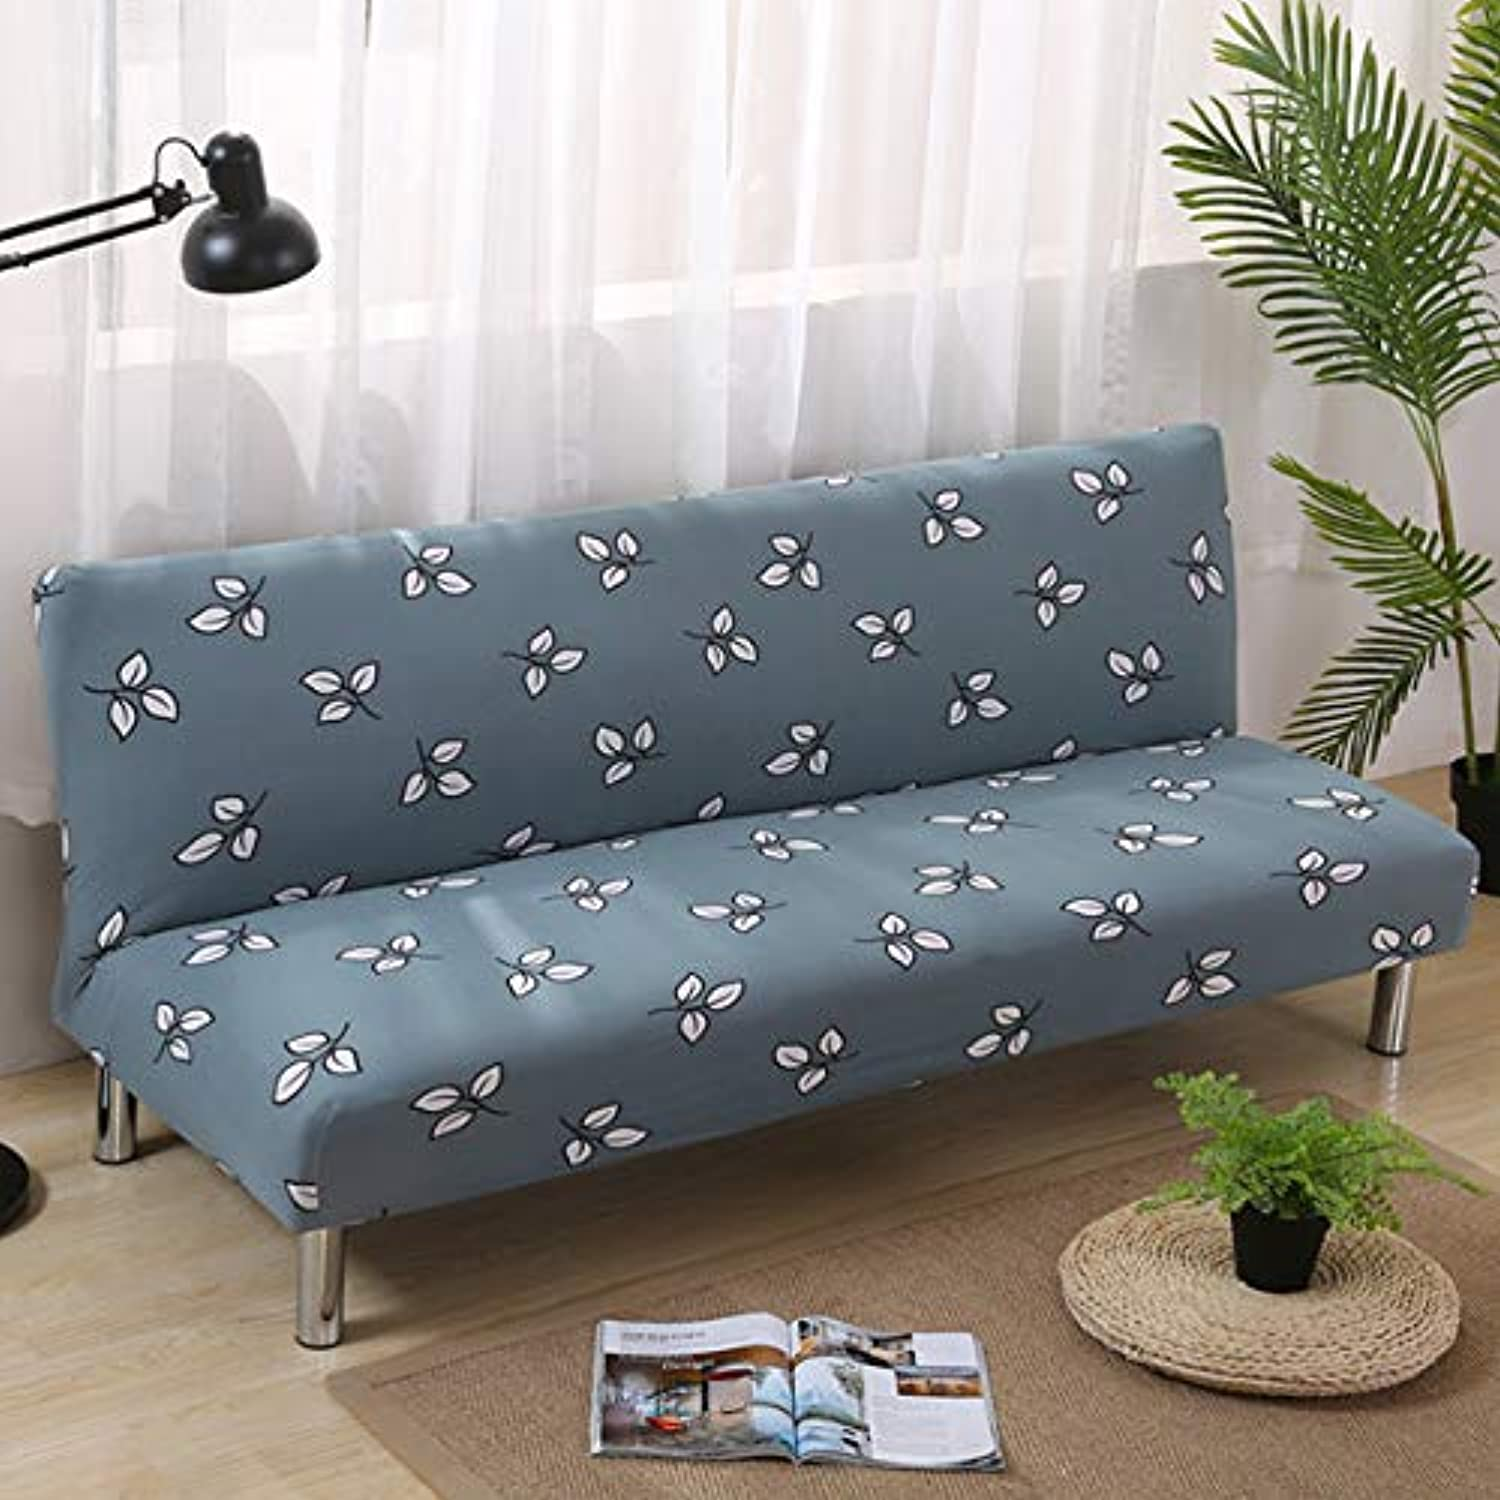 Leaves Pastoral Printing Sofa Cover Slip-Resistant Sectional Elastic Full Sofa Towel for Living Room 1 2 3 4-seater   color 20, 3seater 190-230cm